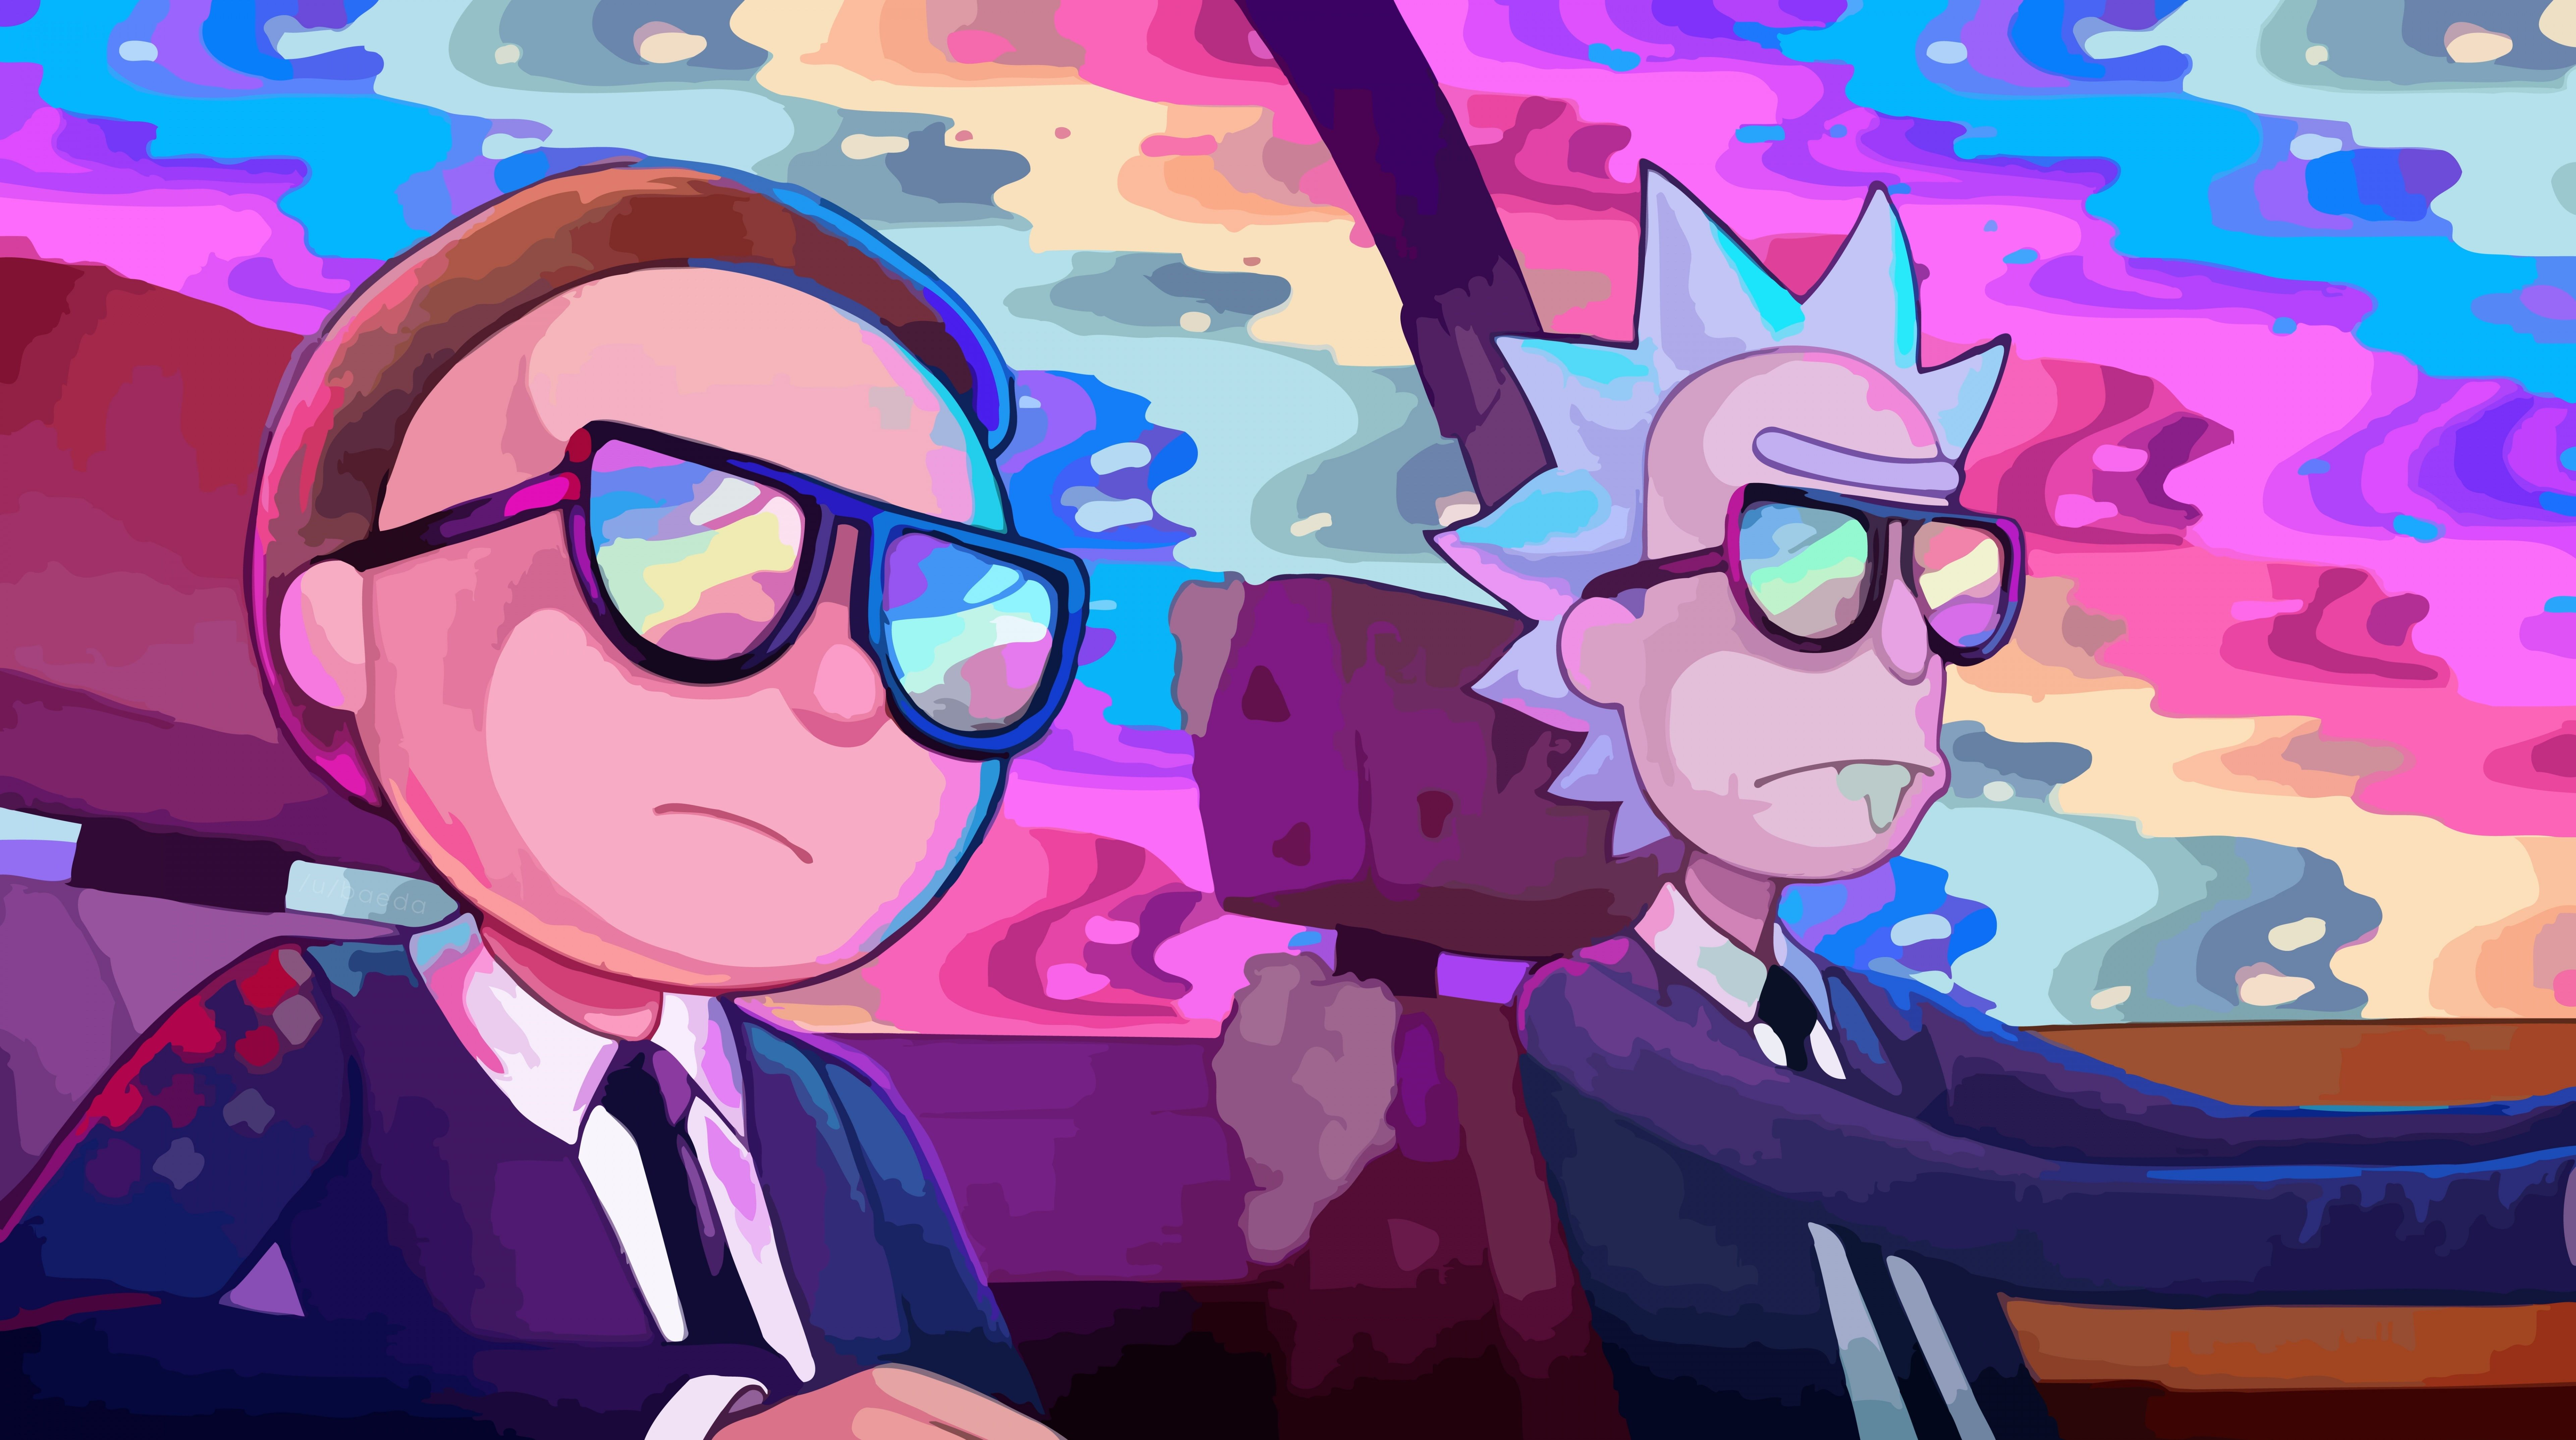 Rick And Morty Car Rainbow Cartoons Others Rainbow Cool Morty Rick 8k Wallpaper Hdwallpaper Desk Rick And Morty Rick And Morty Poster Rainbow Cartoon